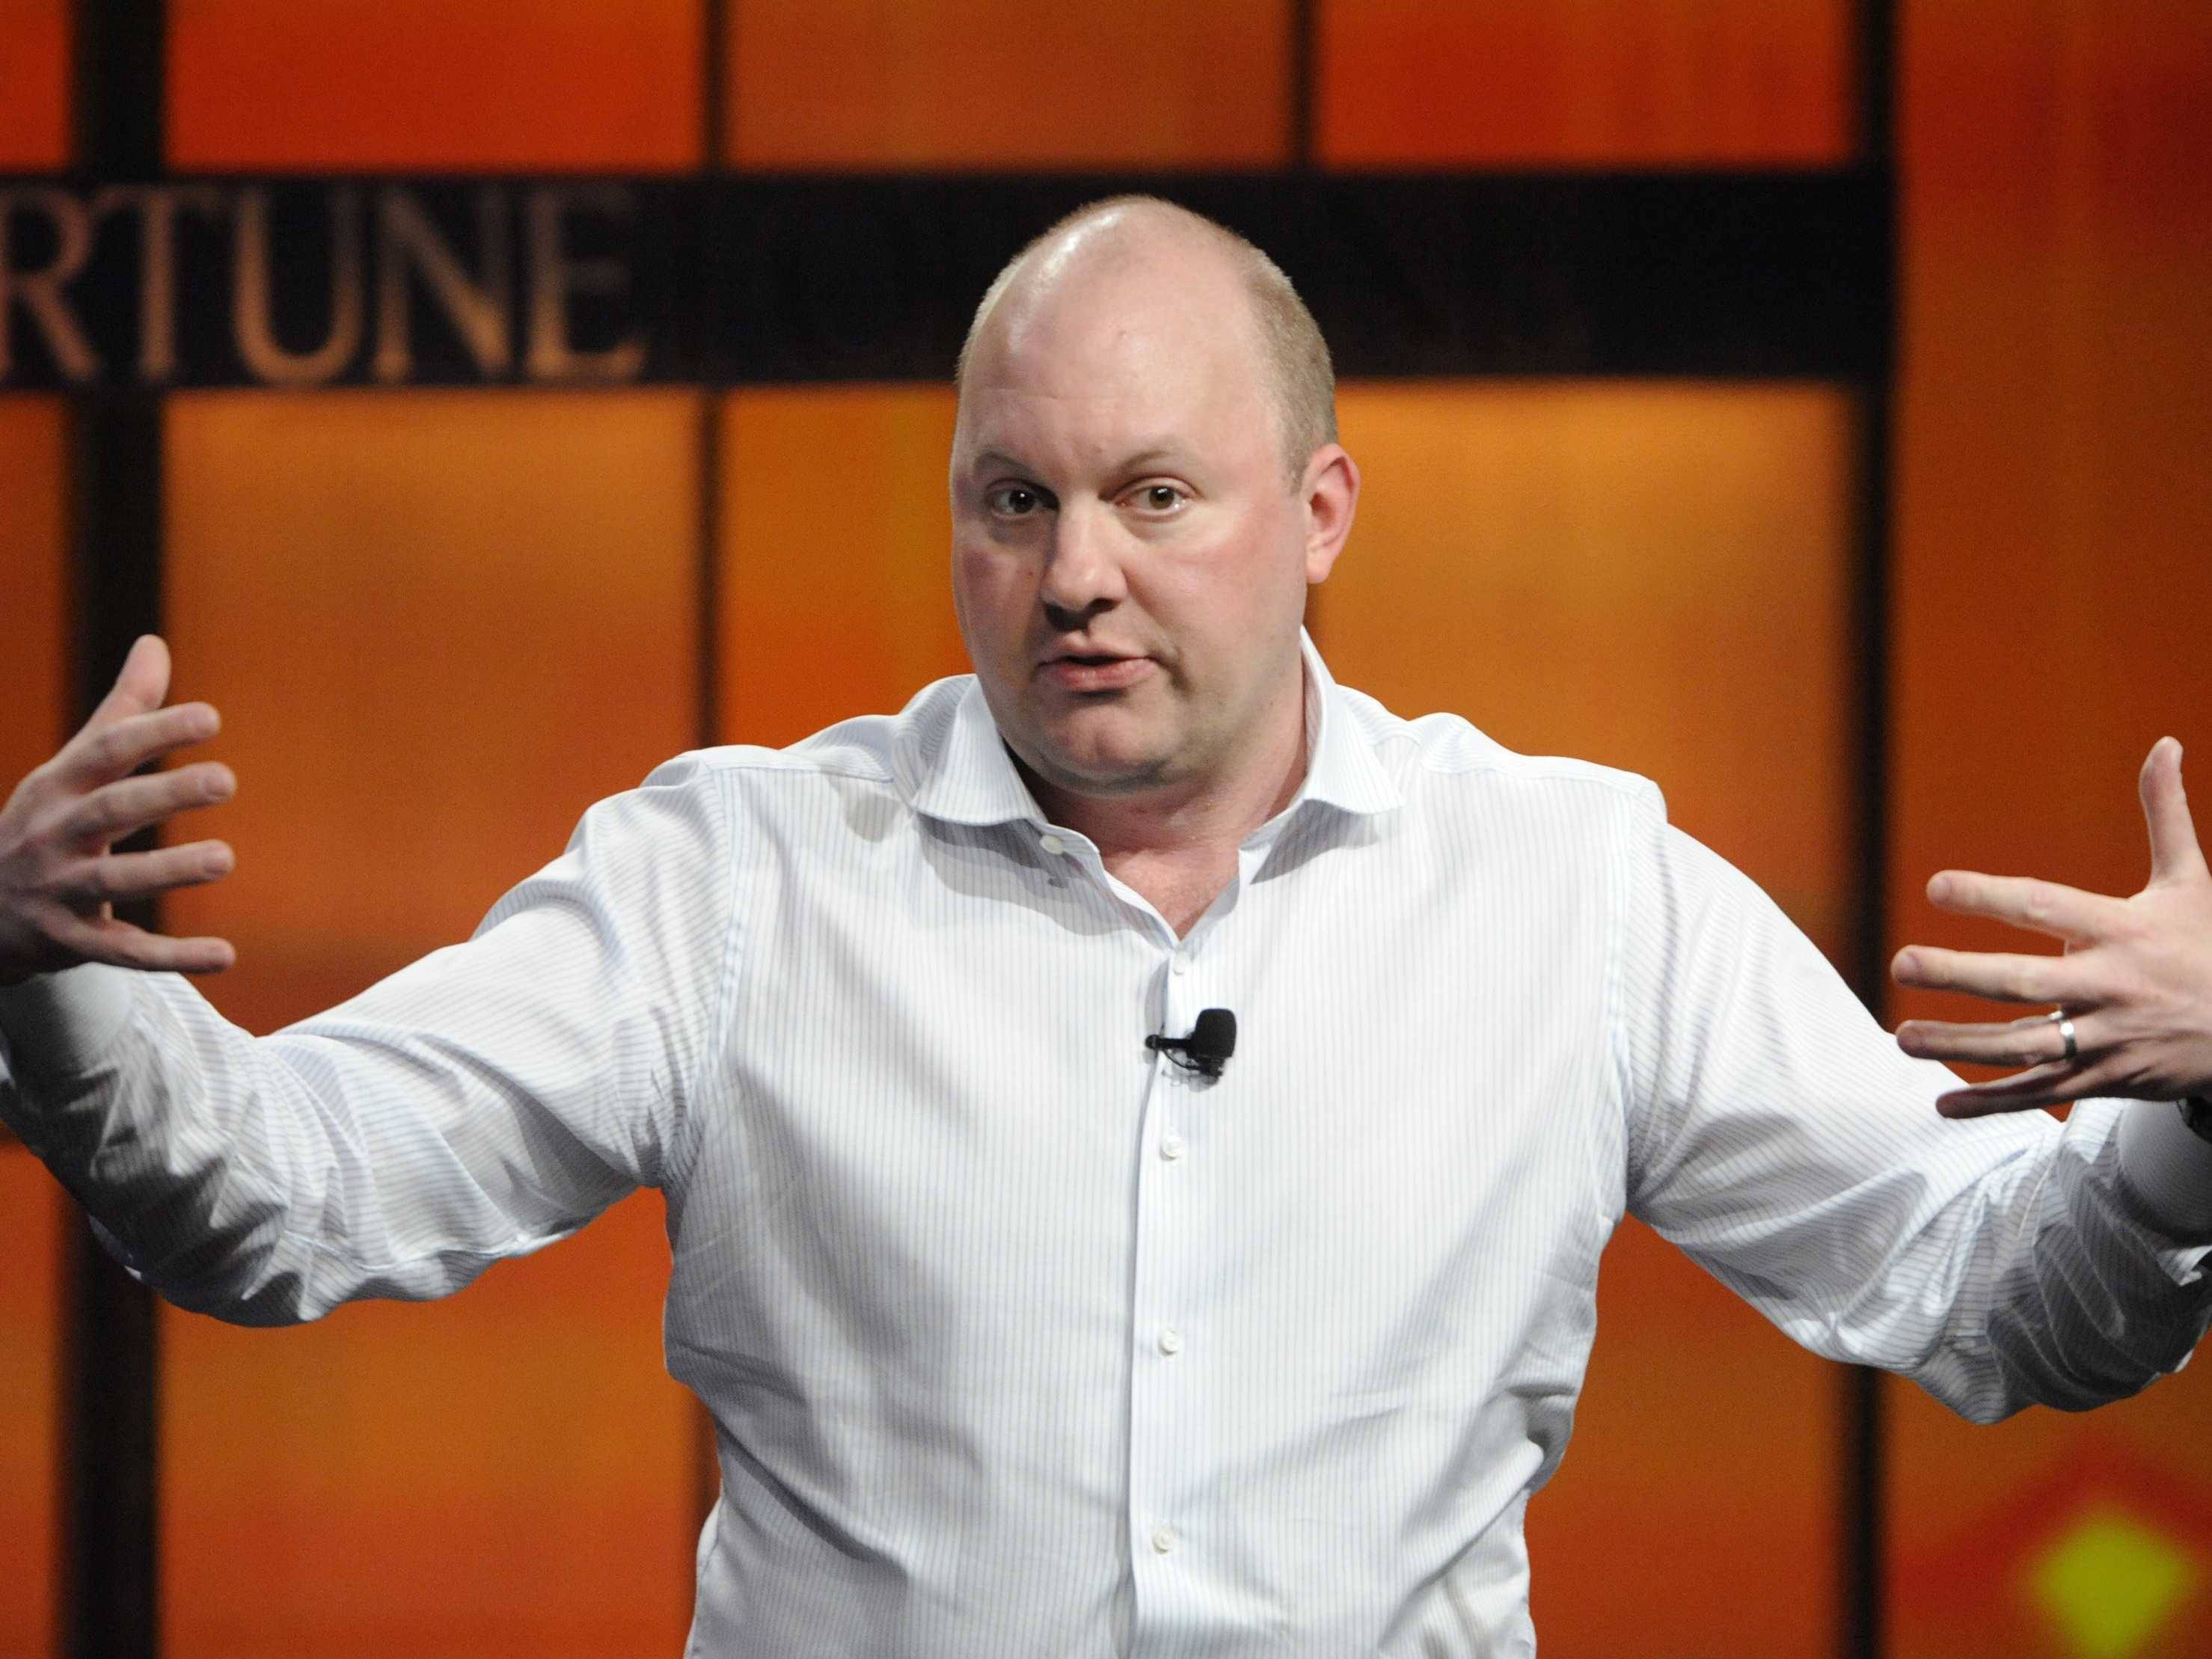 marc-andreessen-explains-how-bubbles-happen